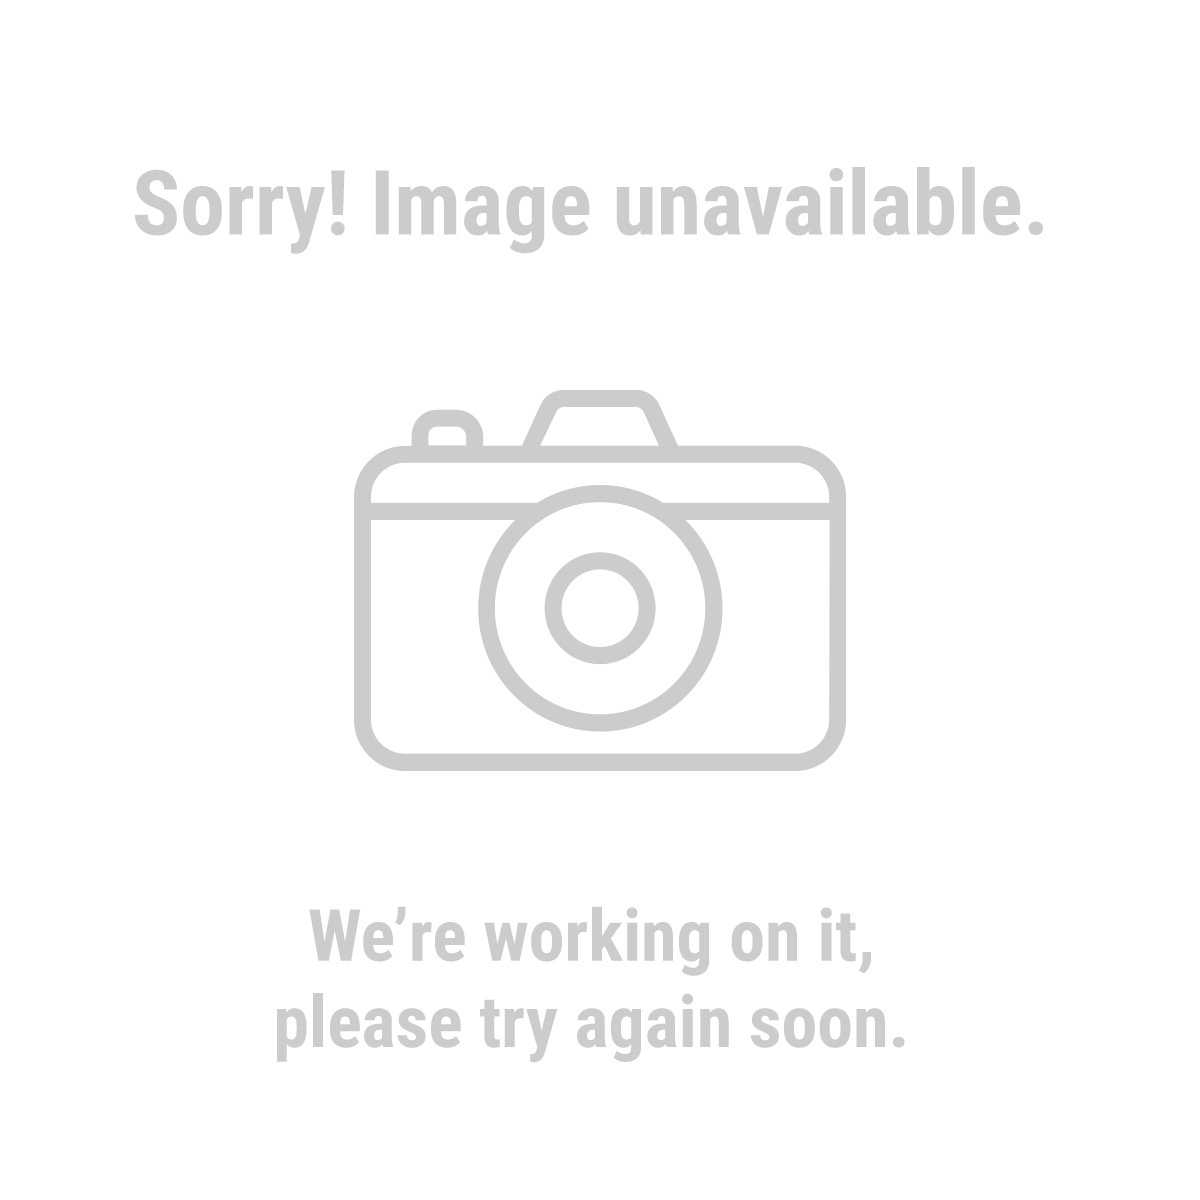 Chicago Electric Power Tools 63112 1/2 in. Heavy Duty Spade Handle Drill